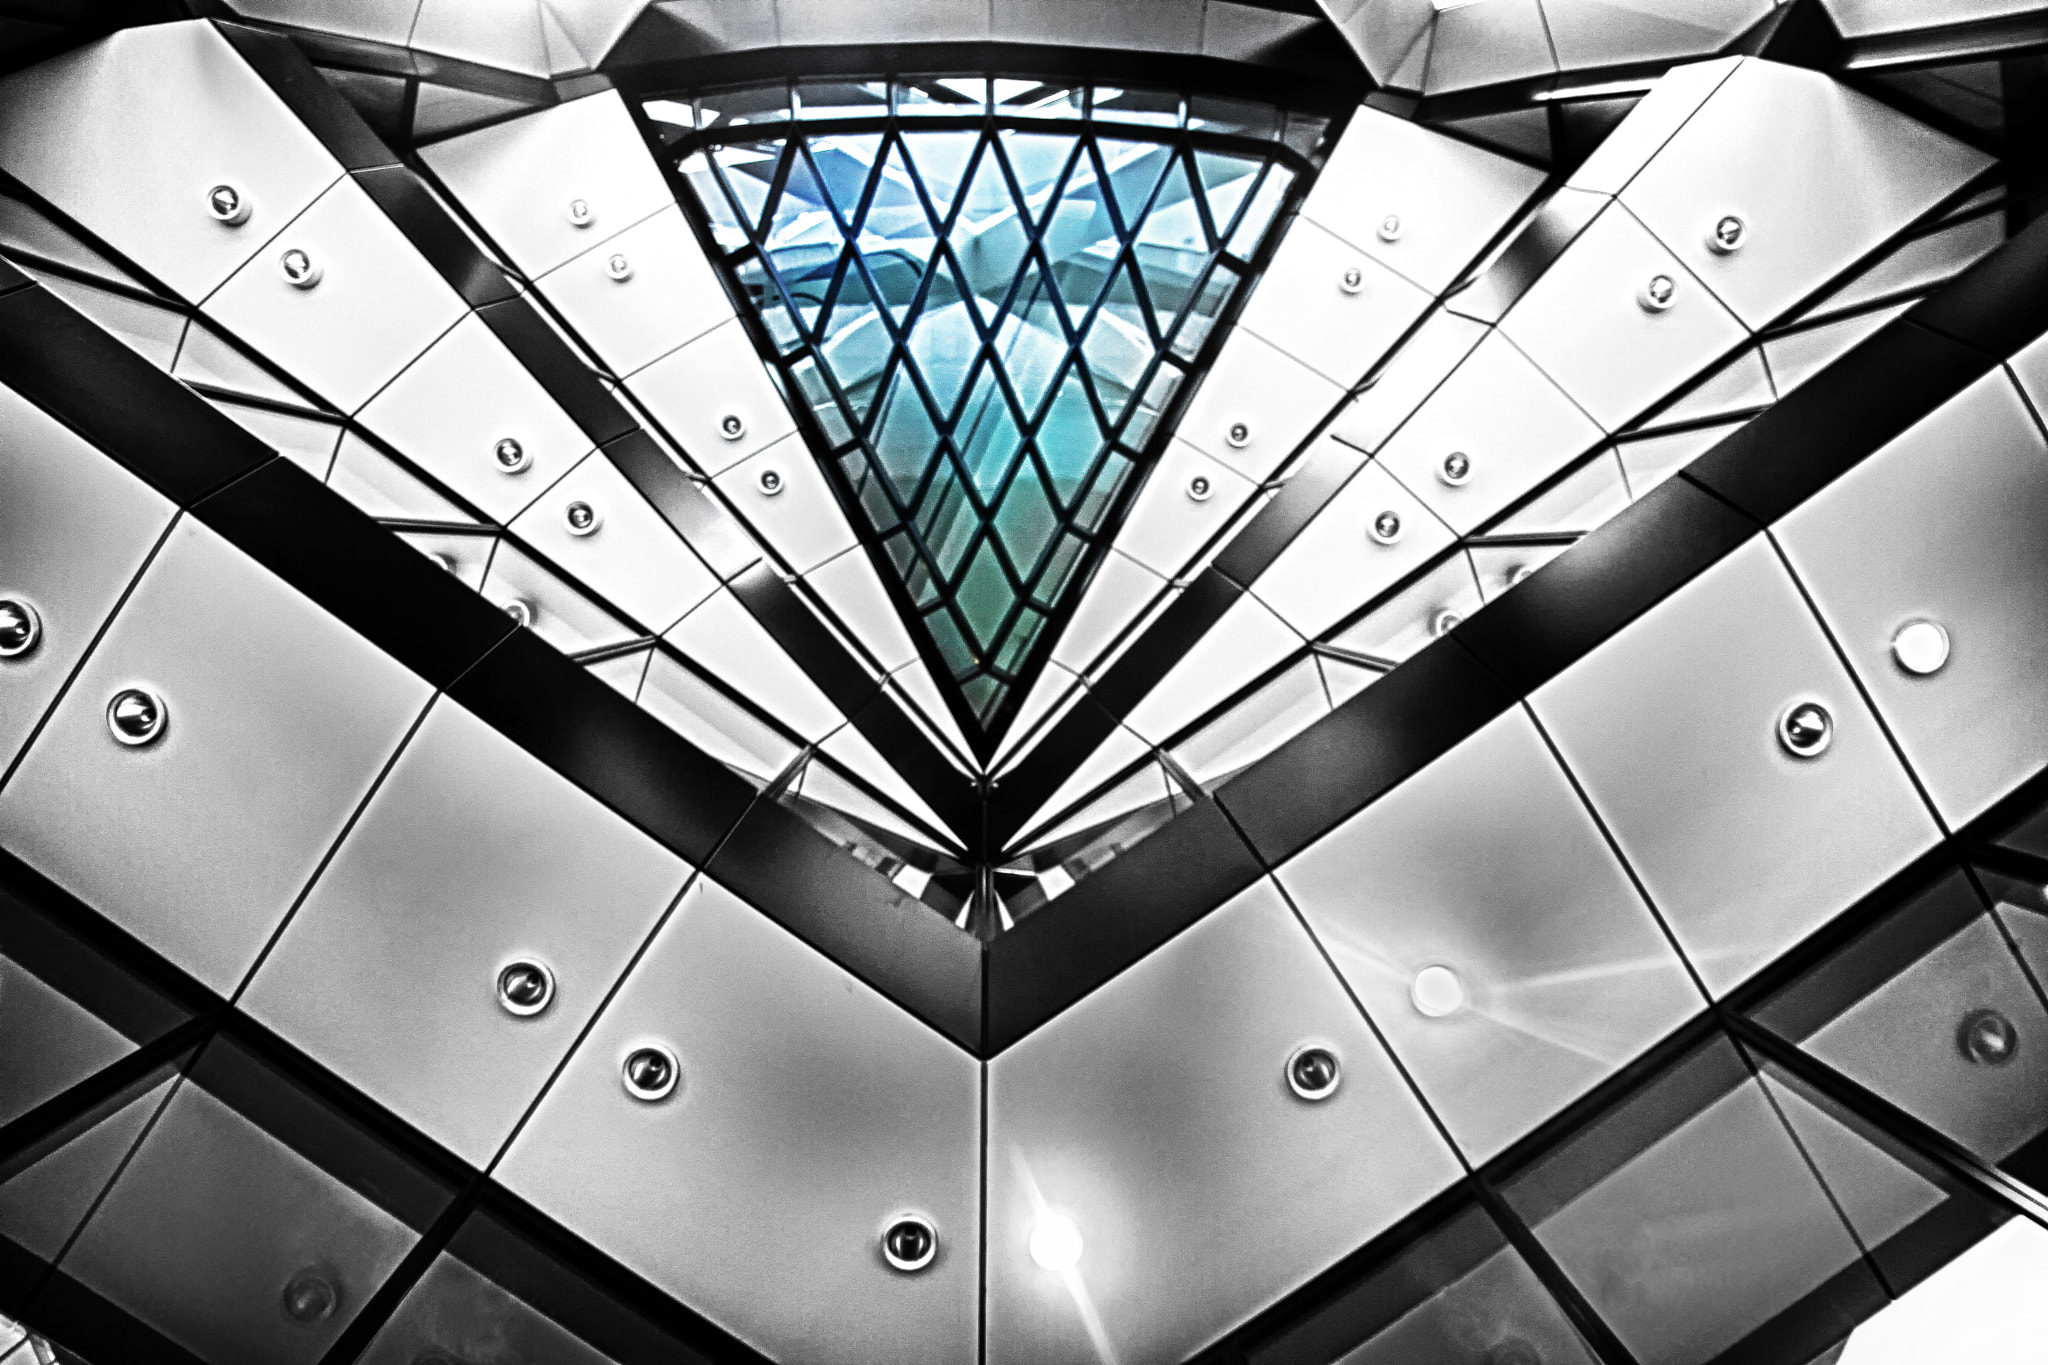 Photograph InsidE ThE DiamonD by Guillaume Rio on 500px